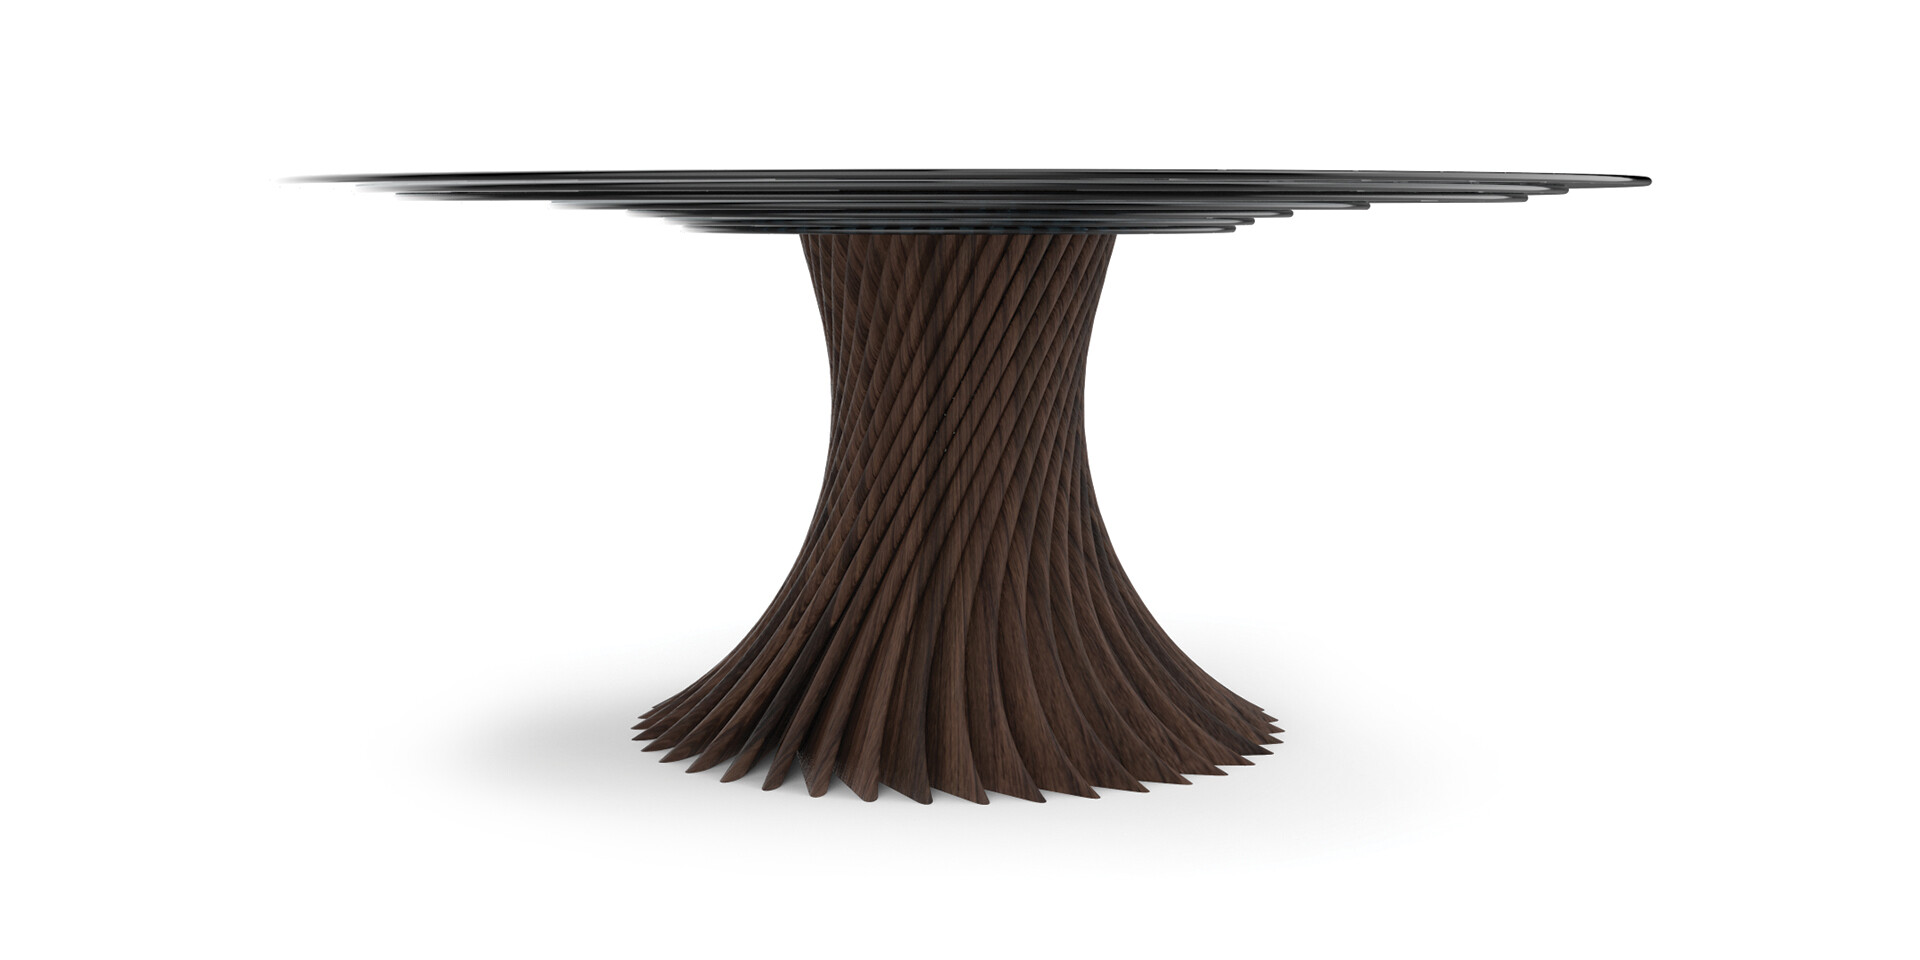 NARUTO Dining Table FrontView- ALMA de LUCE